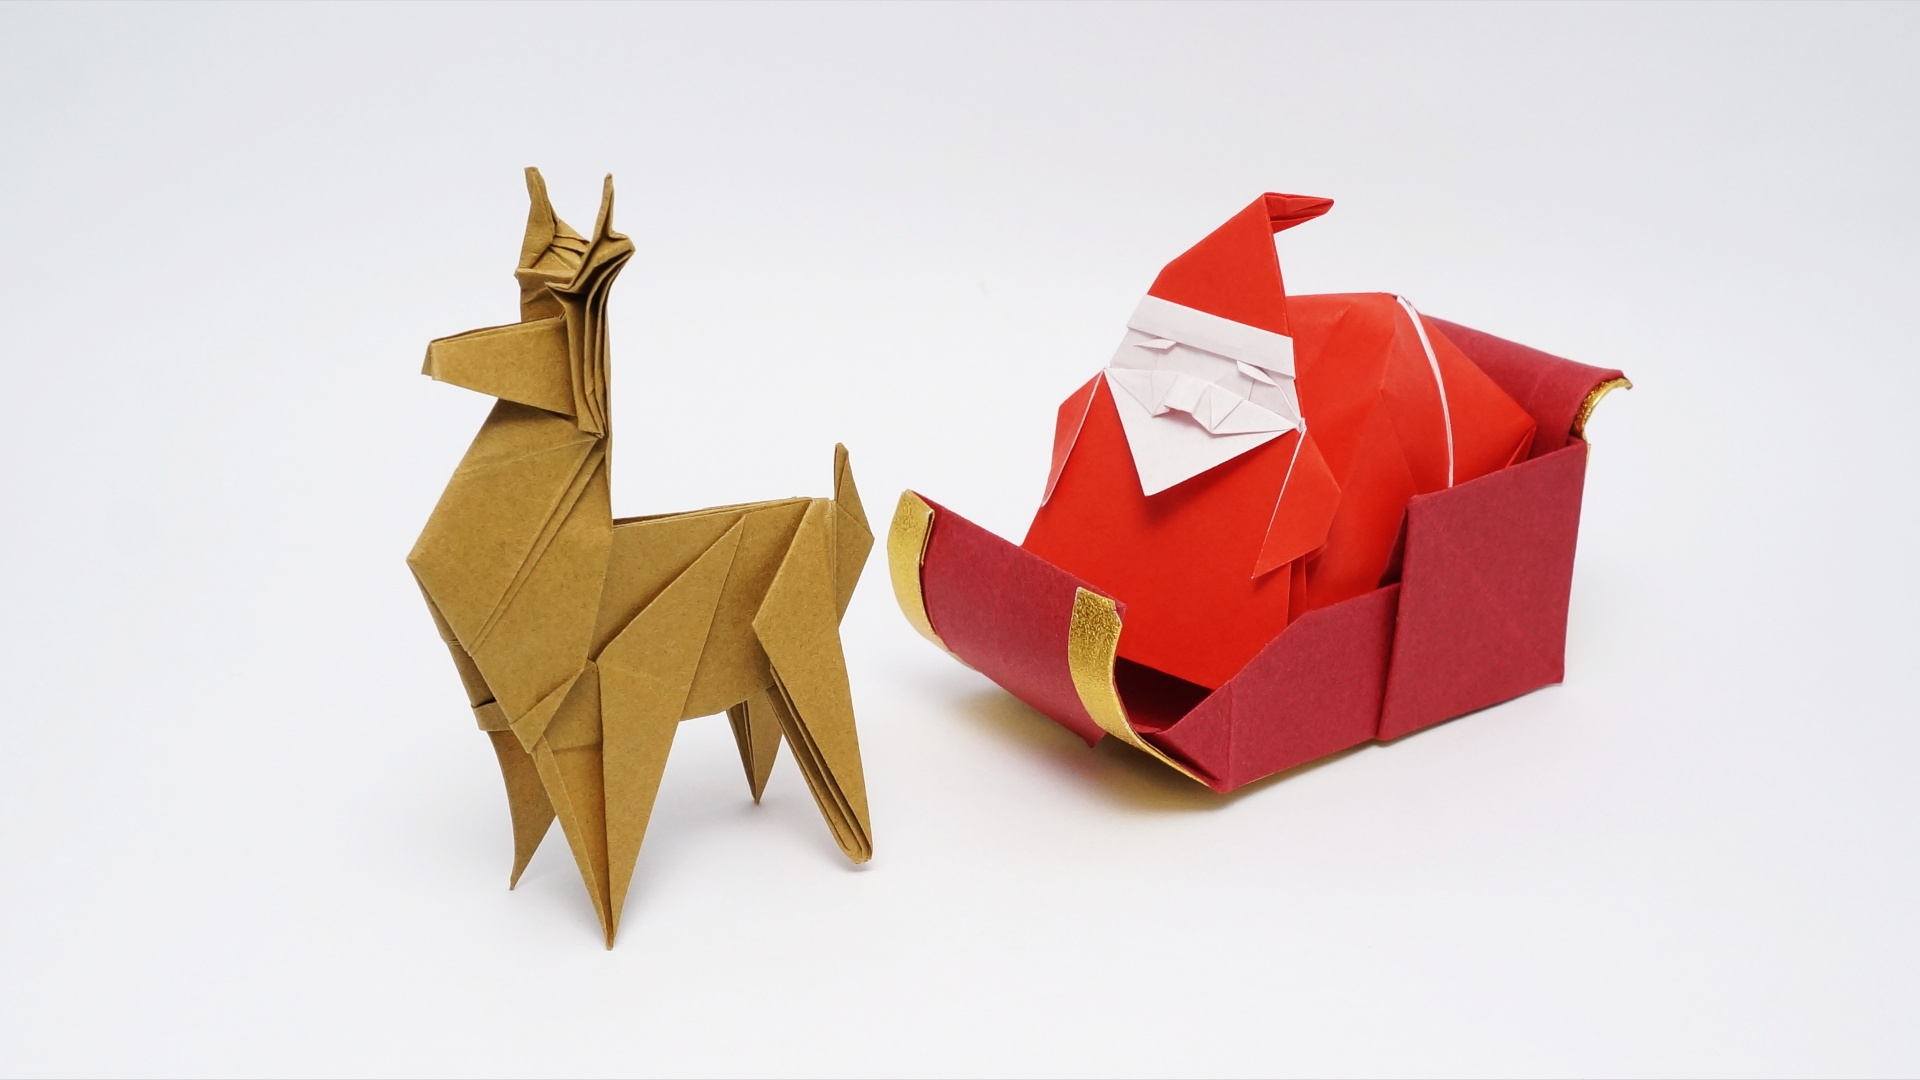 make origami easy instructions for kids: origami Deer 1 3D | 1080x1920